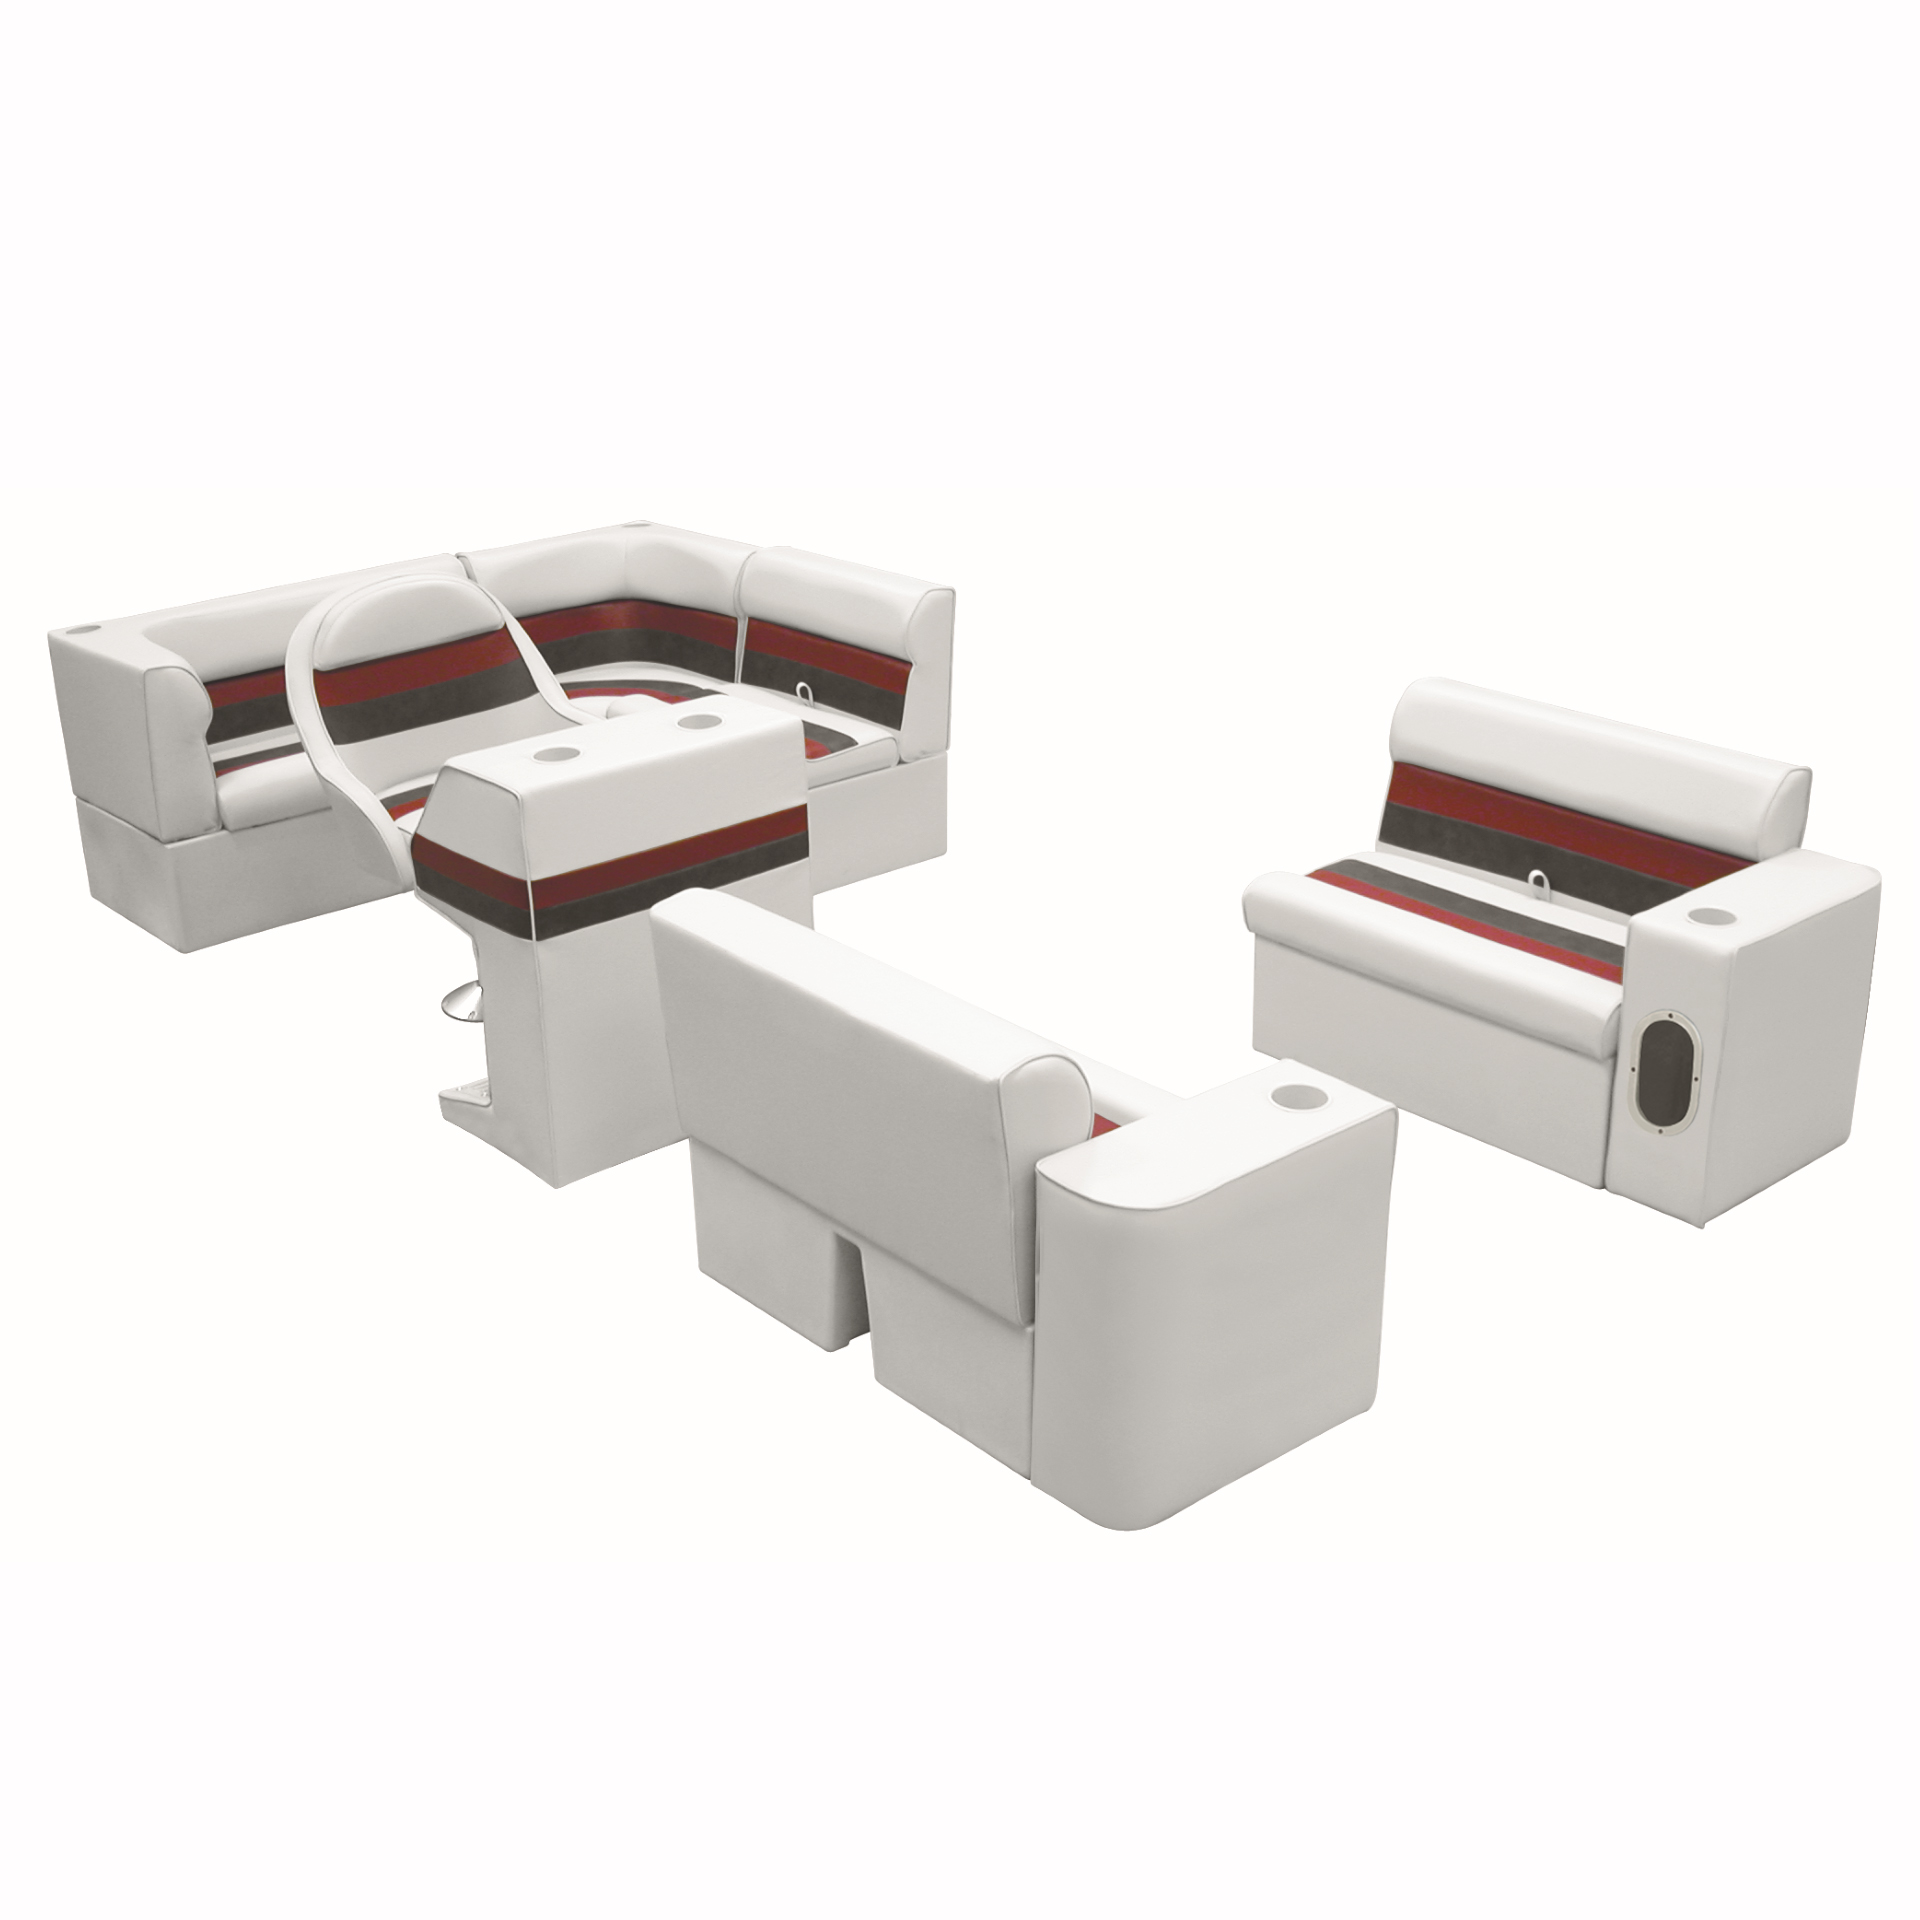 Deluxe Pontoon Furniture w/Classic Base - Complete Boat Package C, White/Red/Cha